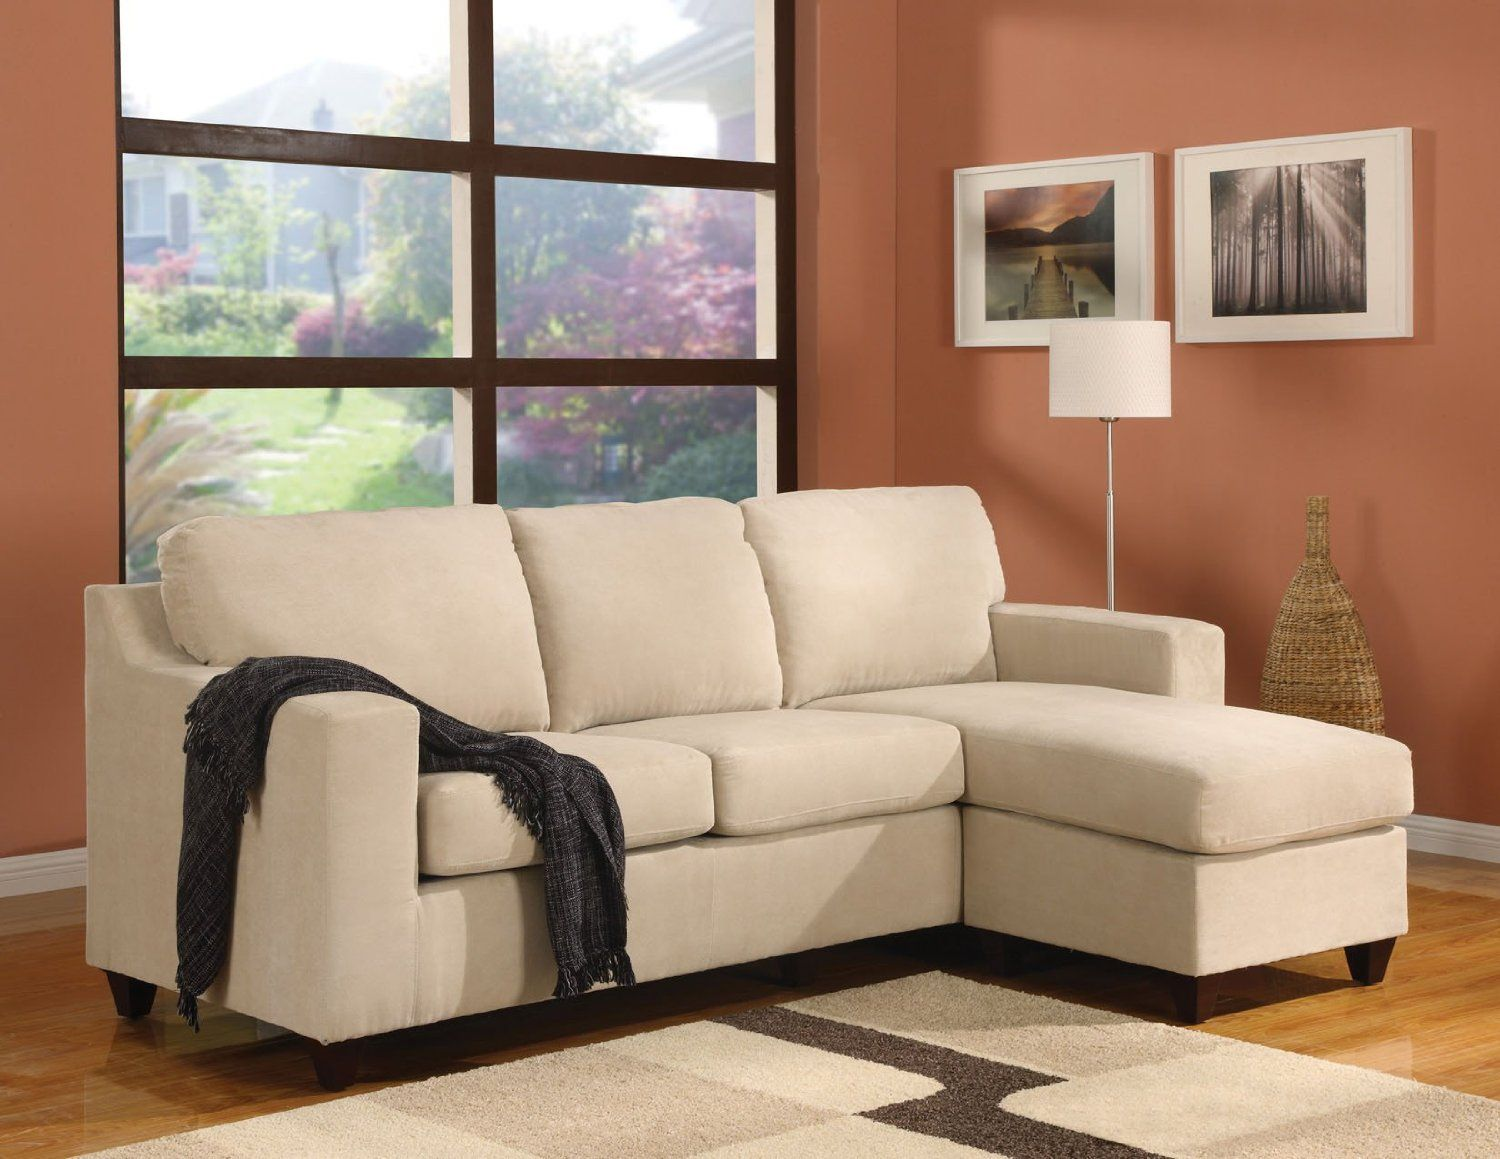 Awesome Small Sectional Sofa With Chaise Lounge Chairs Chaise